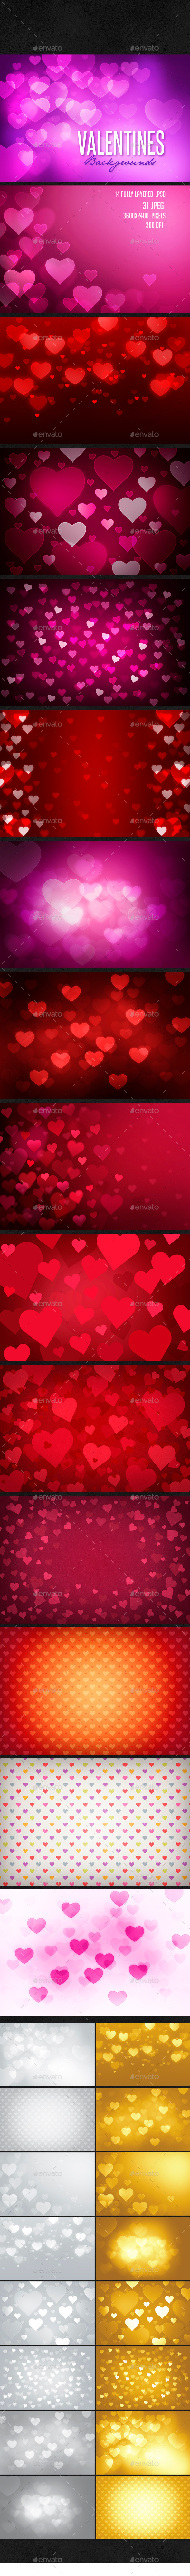 Valentine's Day Background - Backgrounds Graphics